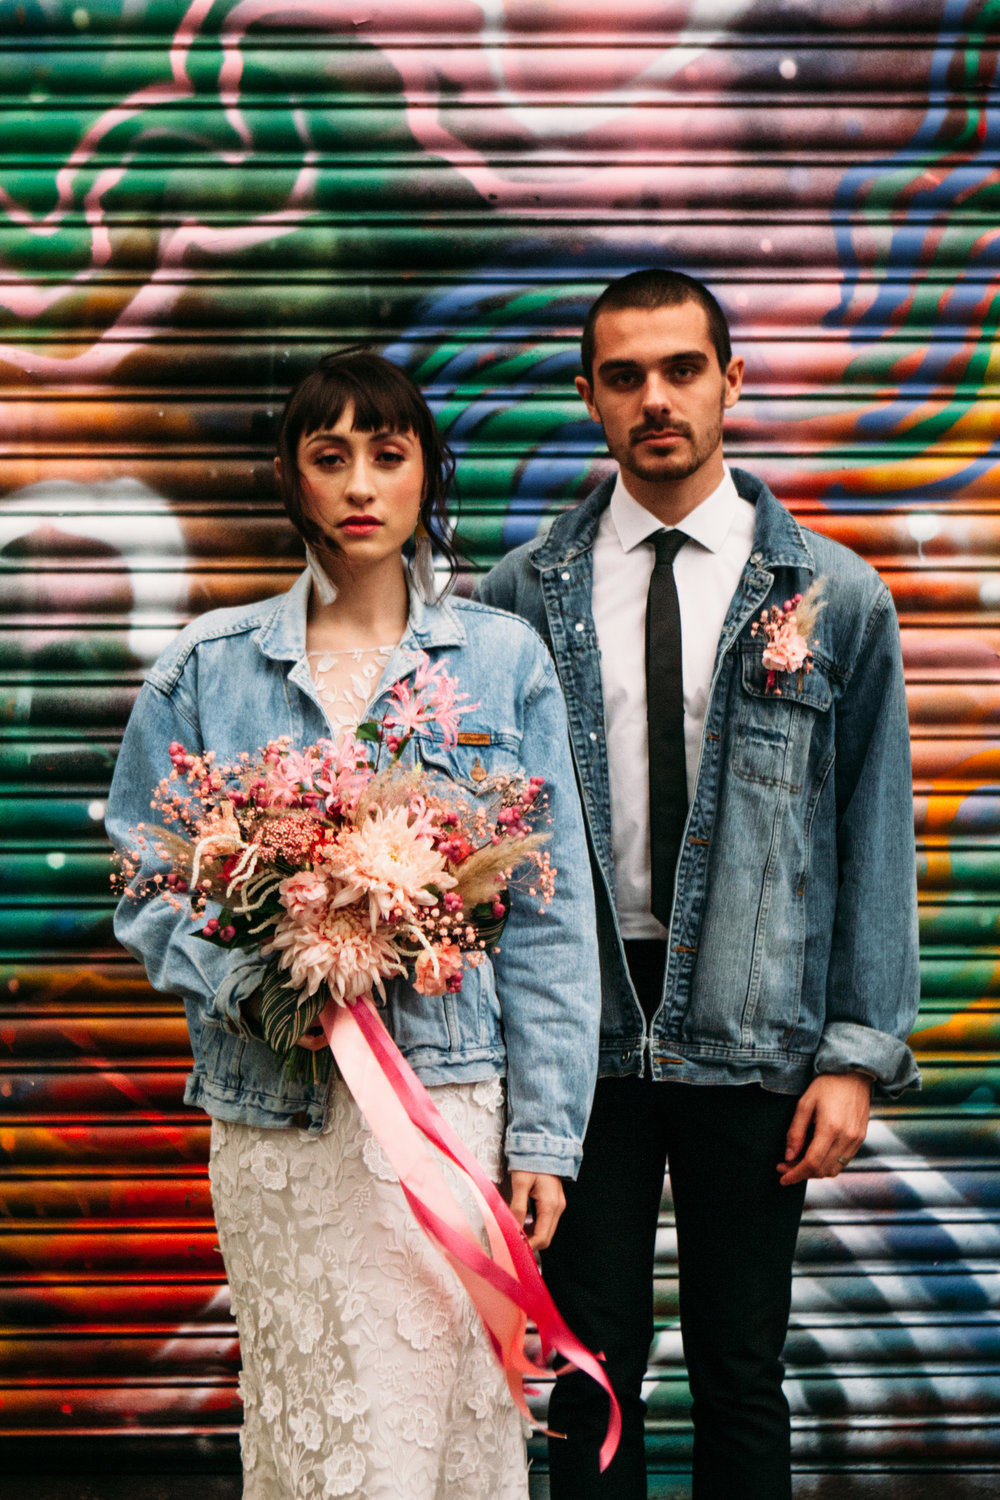 Grit and Glam Pink Shoreditch Elopement 00042.jpg